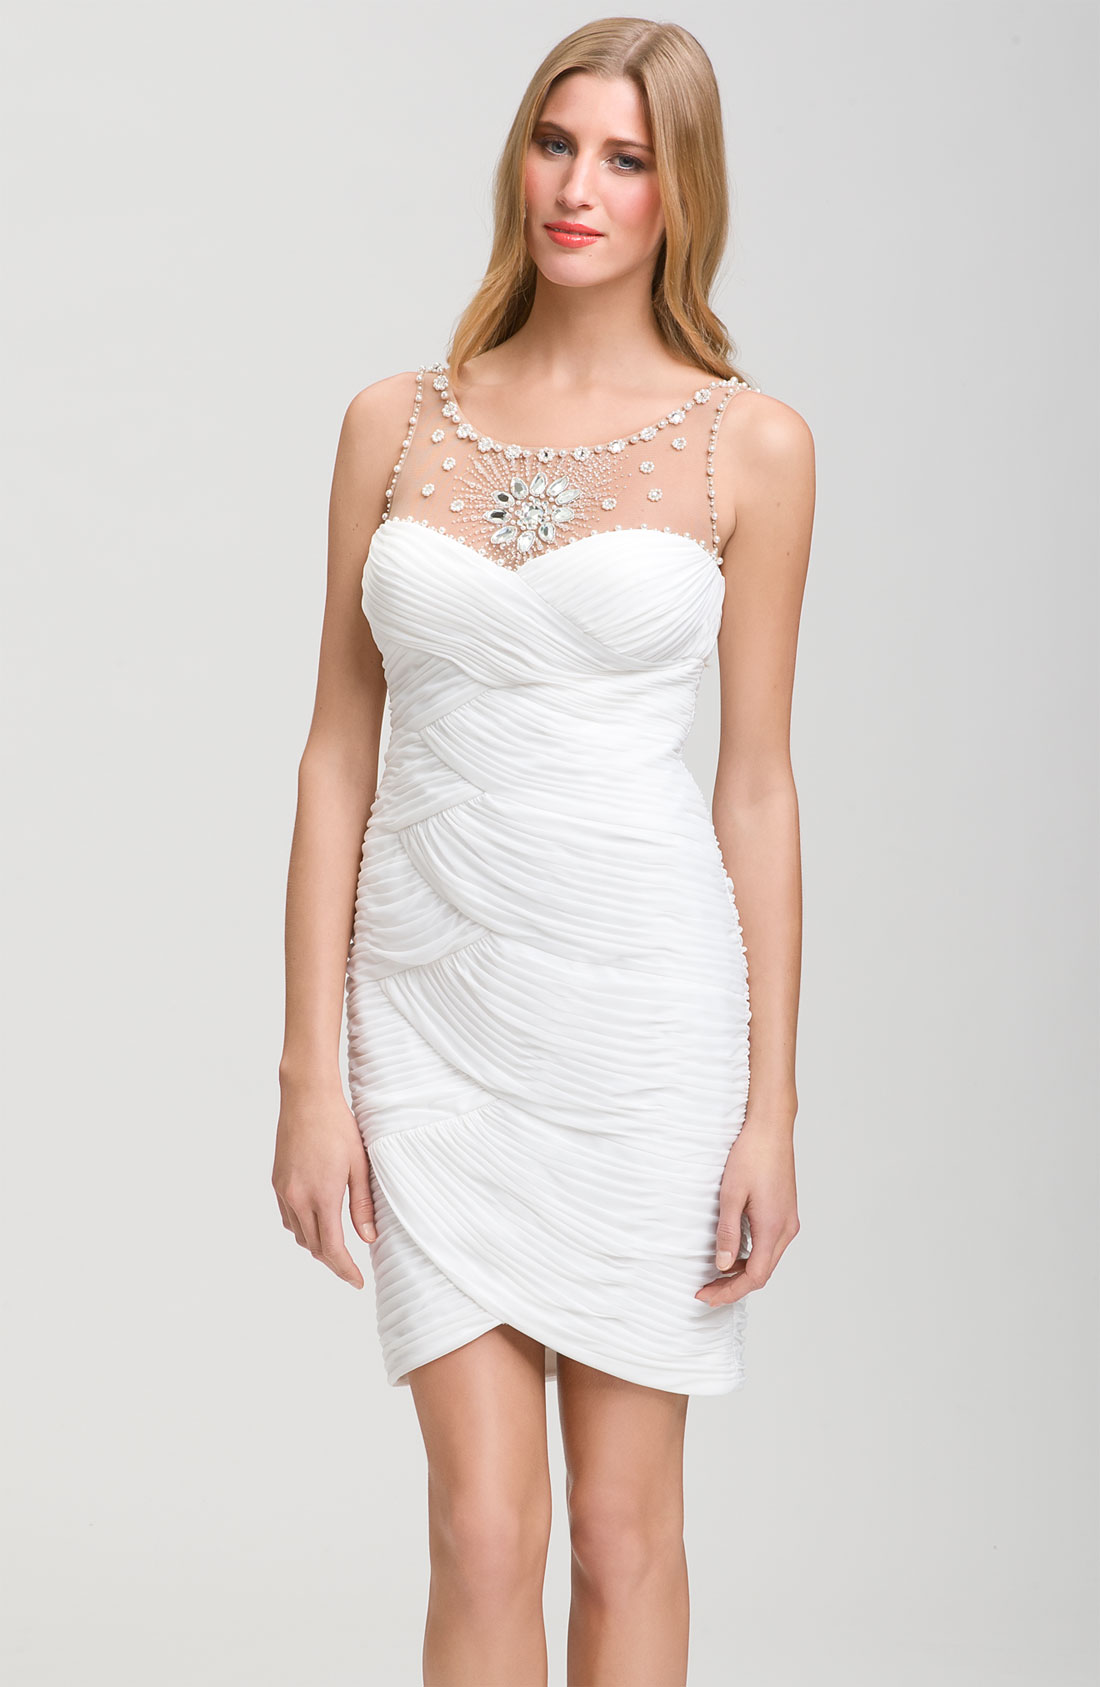 Adrianna papell white evening dresses